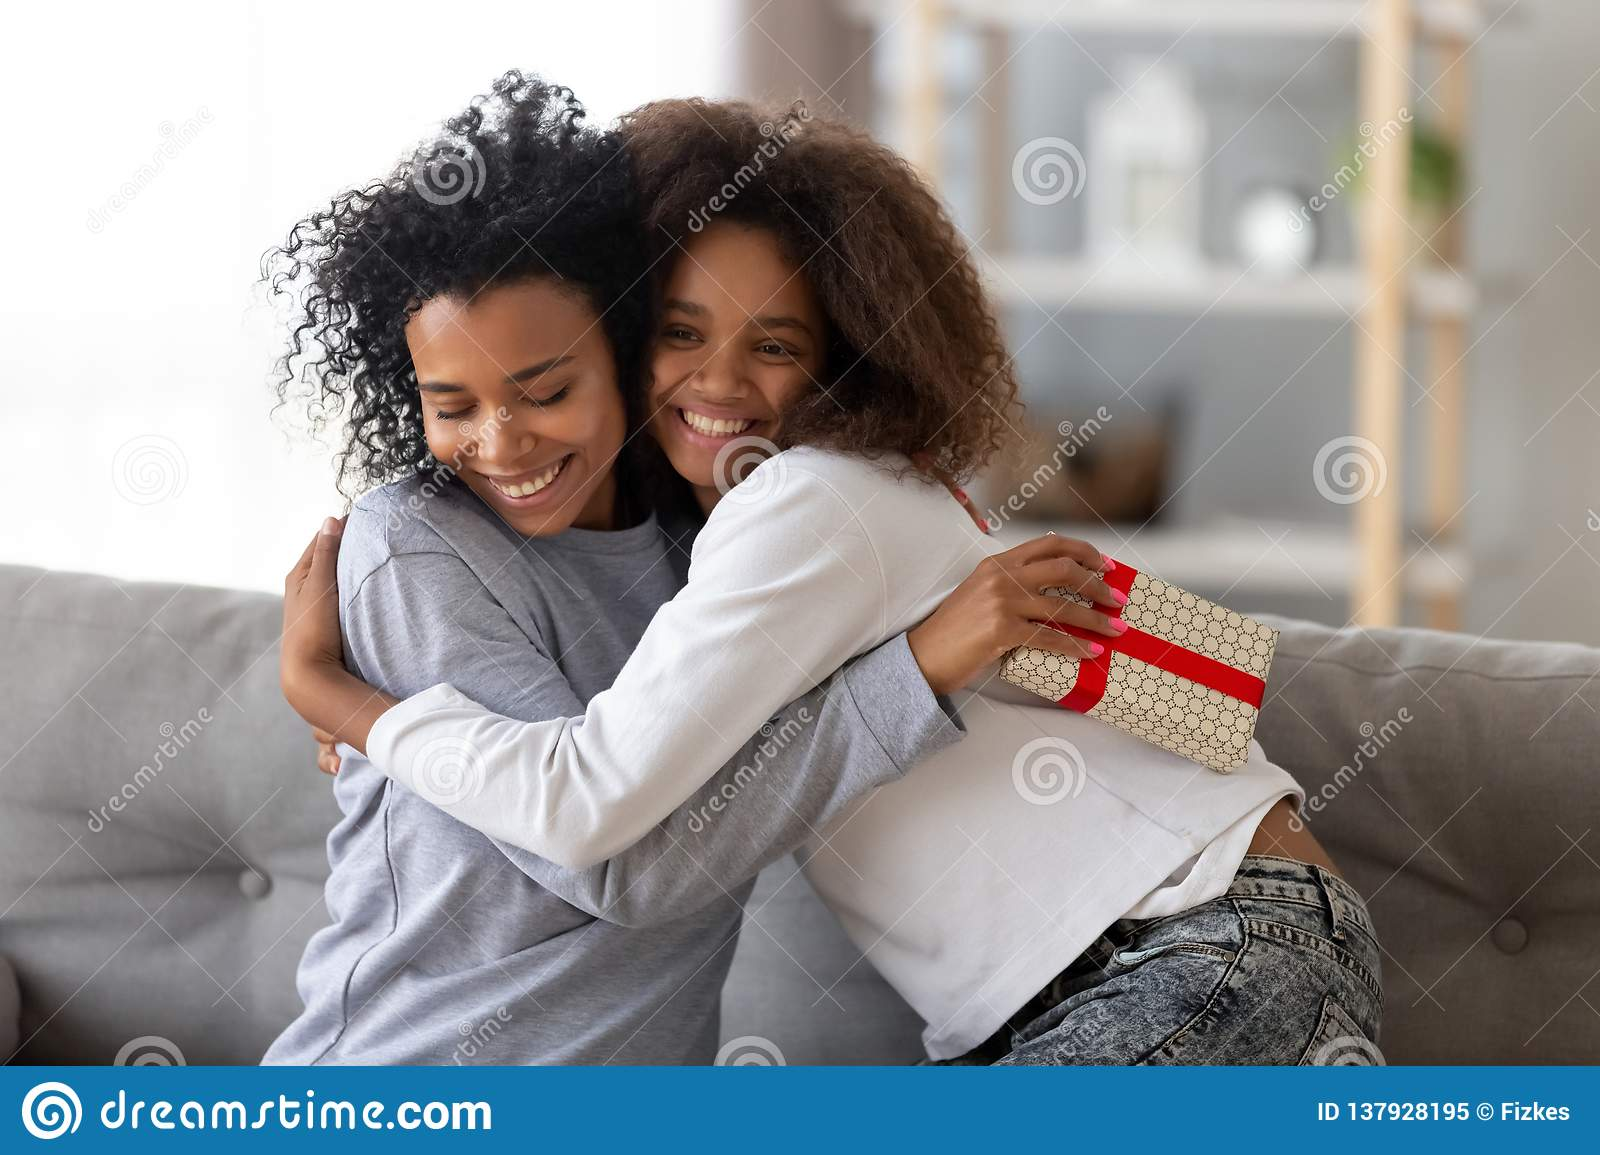 Daughter Hugging On Couch At Home Smiling Black Teenage Girl Congratulate Happy Mom Special Occasion Embrace Making Surprise Present Birthday Gift